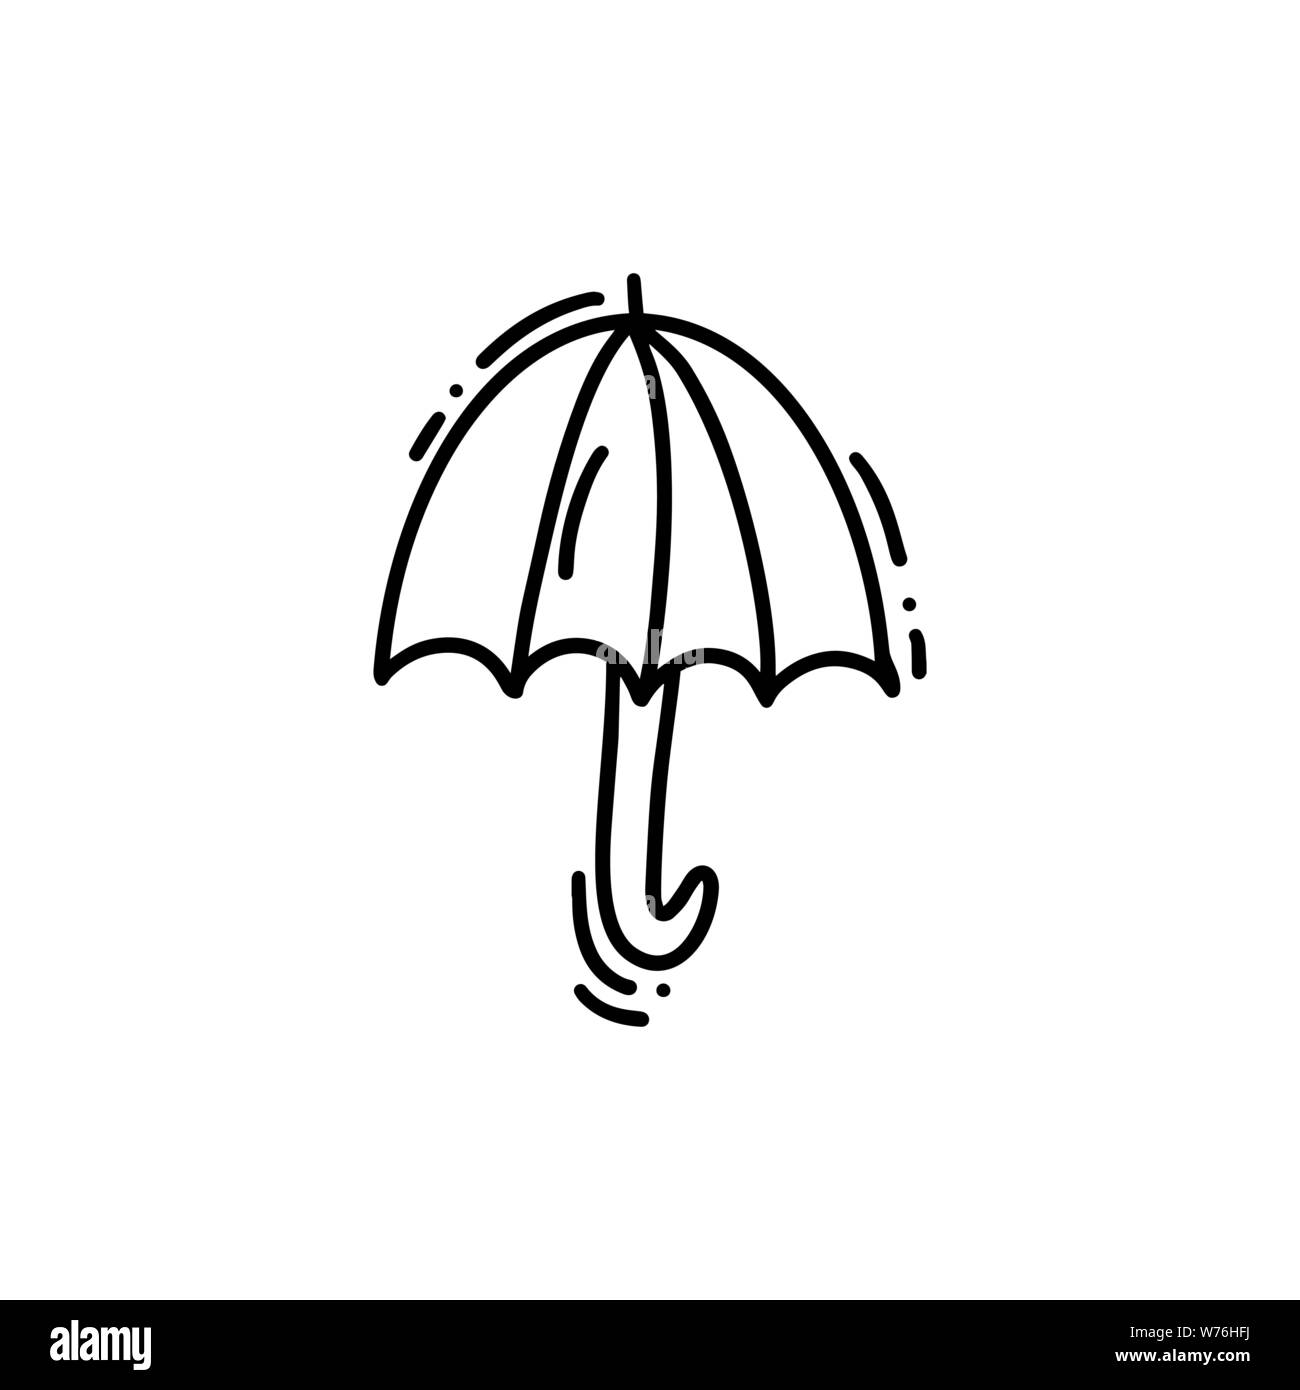 Icon of umbrella on a rainy day doodle hand drawn vector